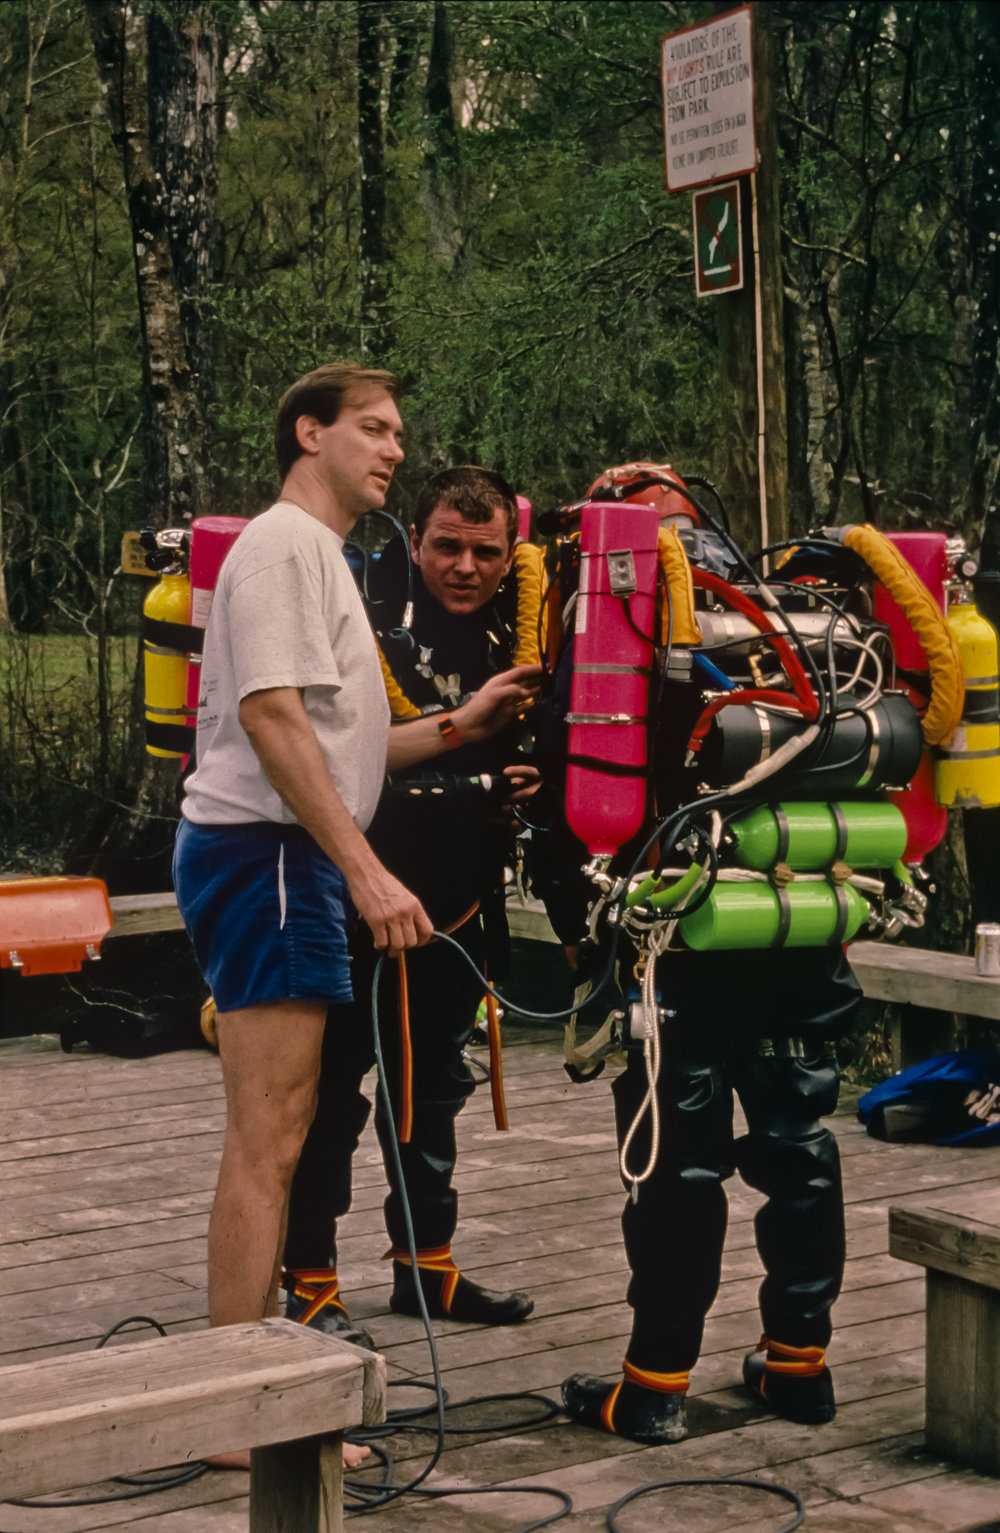 Noel Sloan discusses a dive plan with Ian Rolland and Kenny Broad (back to camera) on the deck at Devil's Eye spring during rehearsal dives for the 1994 San Agustin expedition. Photo by U. S. Deep Caving Team/Bill Stone.